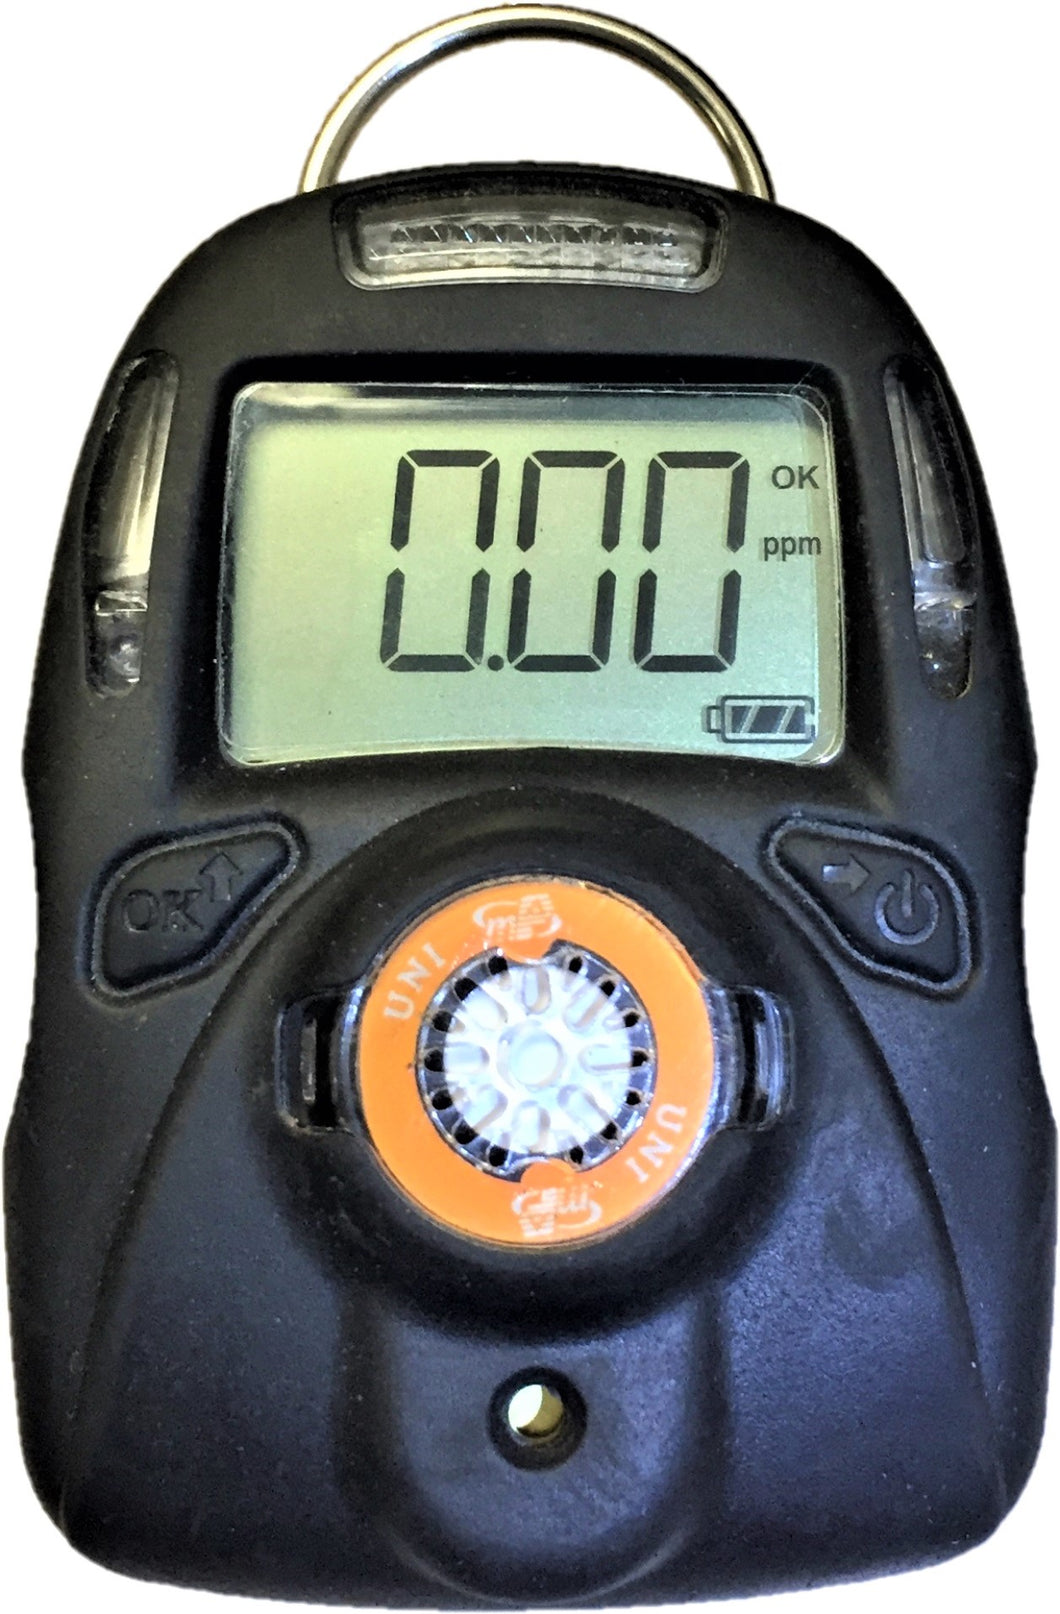 UNI MP100 Ozone (O3) 0.02-5.00 ppm, Long Battery Life, UL Class I/II/III